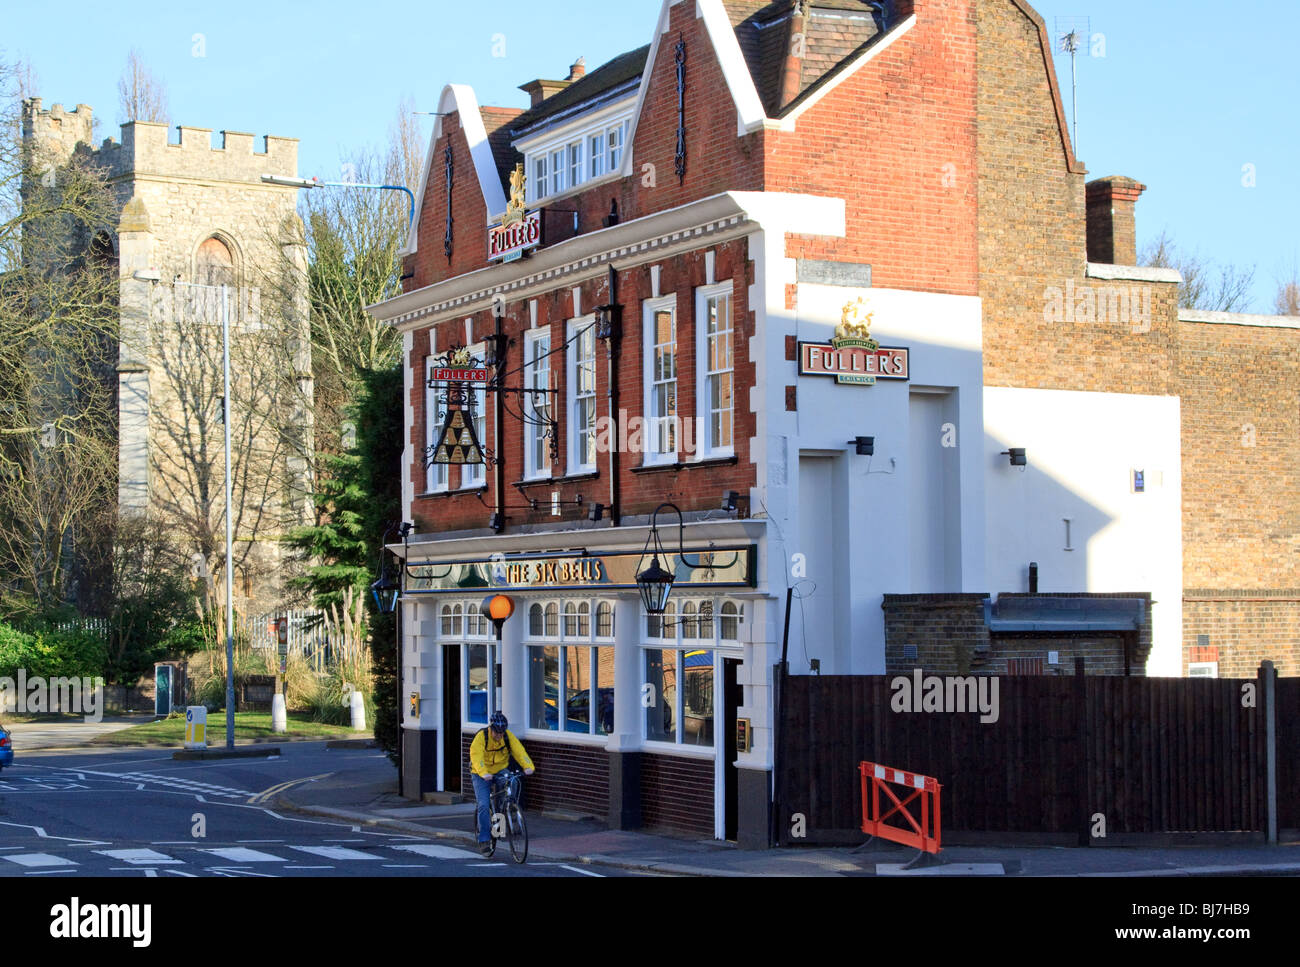 The Six Bells pub, a Fullers tied house in Brentford, London - Stock Image